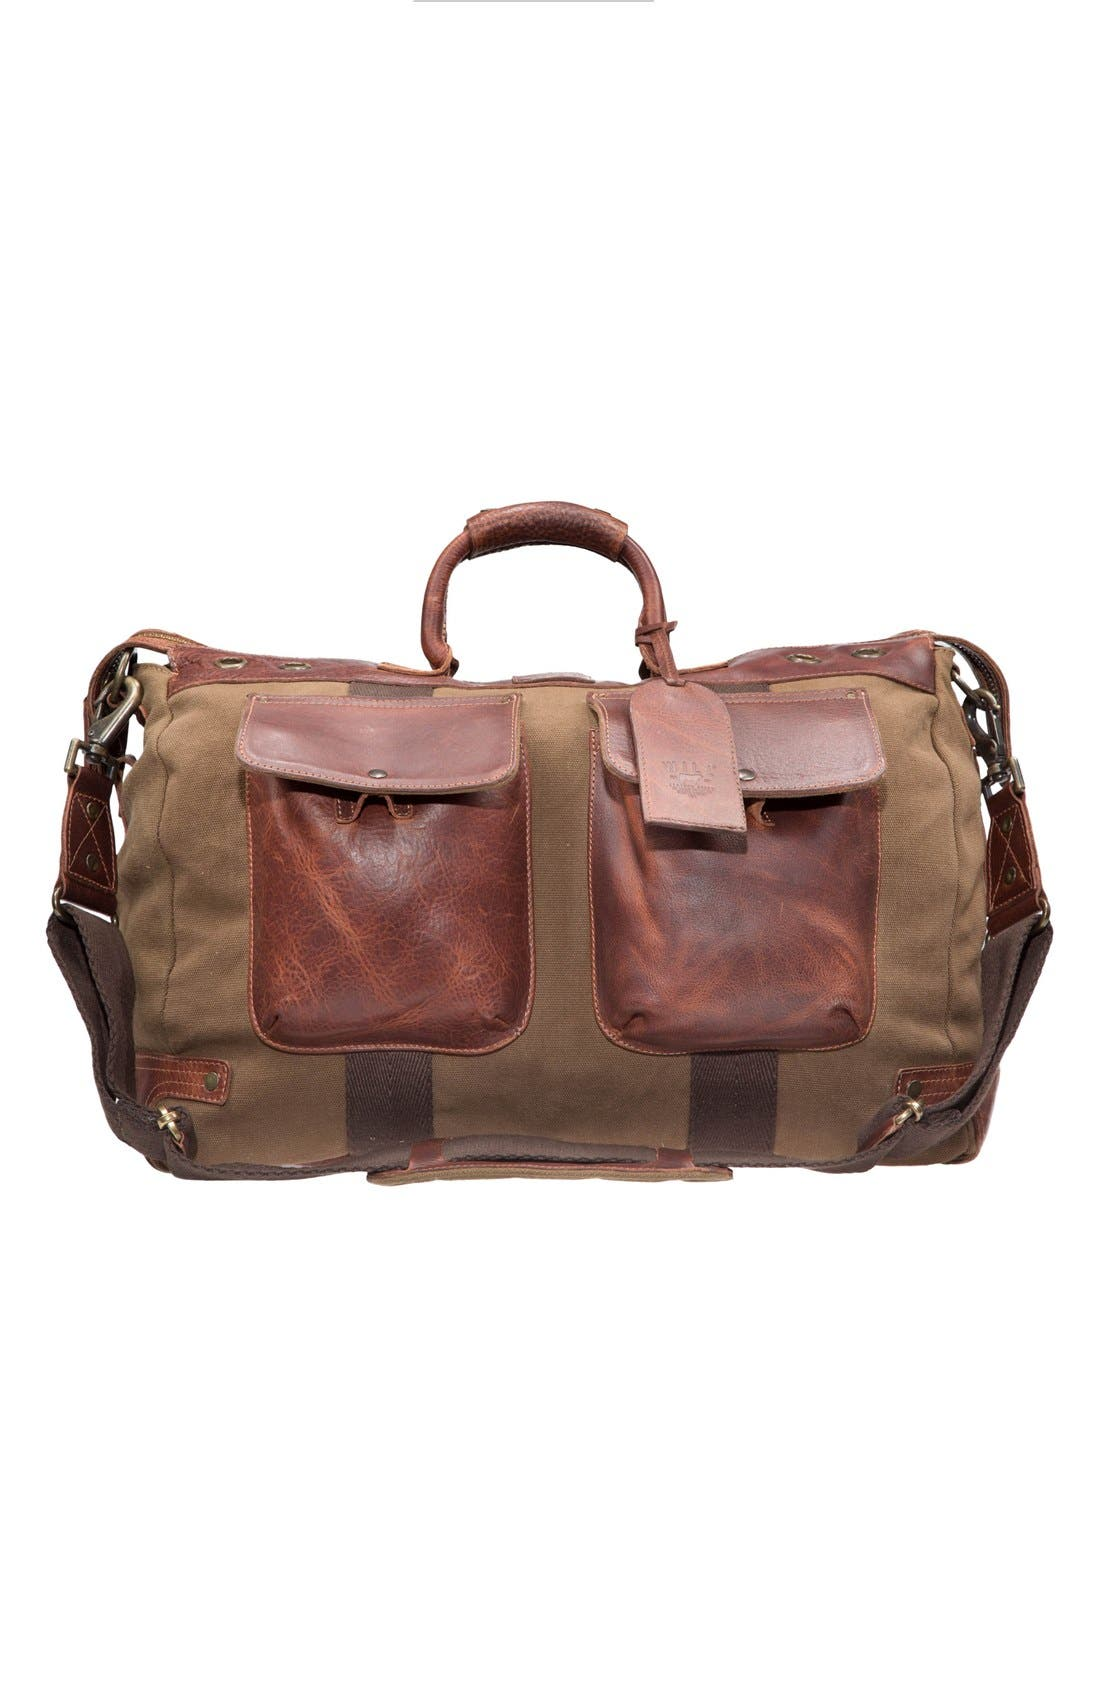 WILL LEATHER GOODS Traveler Duffel Bag